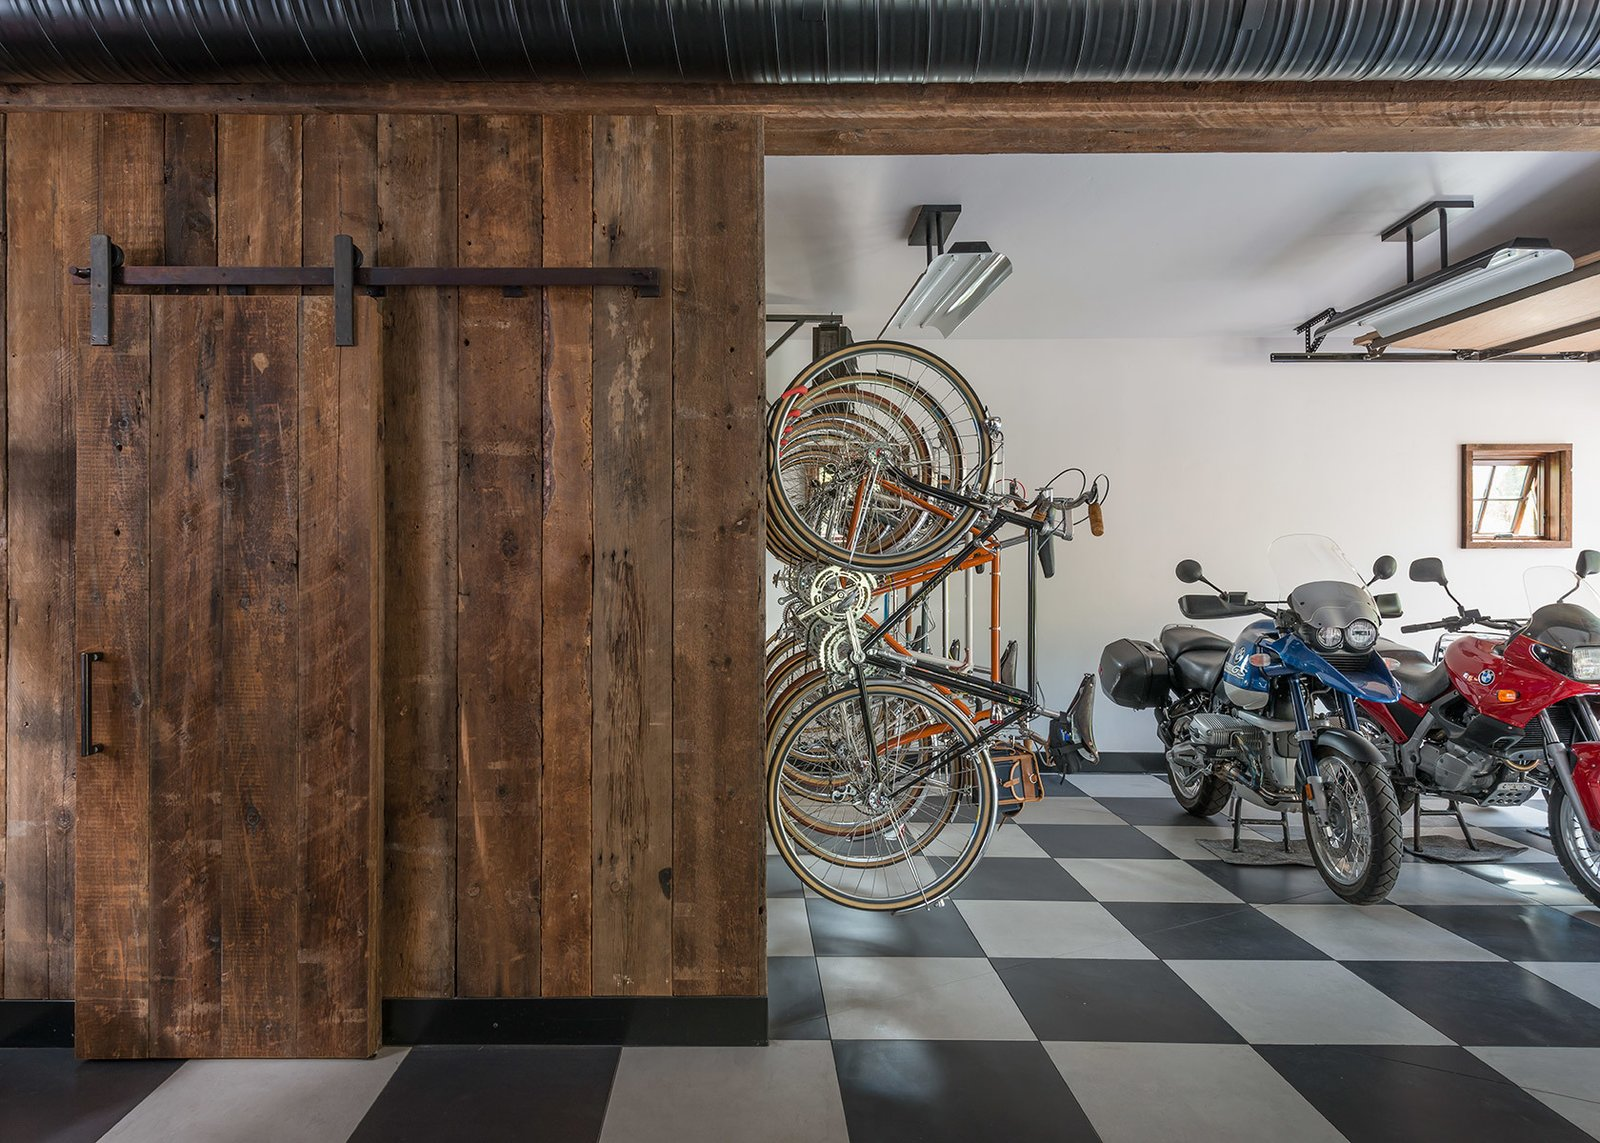 Photo 5 of 8 in a guest barn in jackson wyoming fuses modern and garage and storage room type this garage space uses iconic checkerboard floor tiles to contrast the dailygadgetfo Images